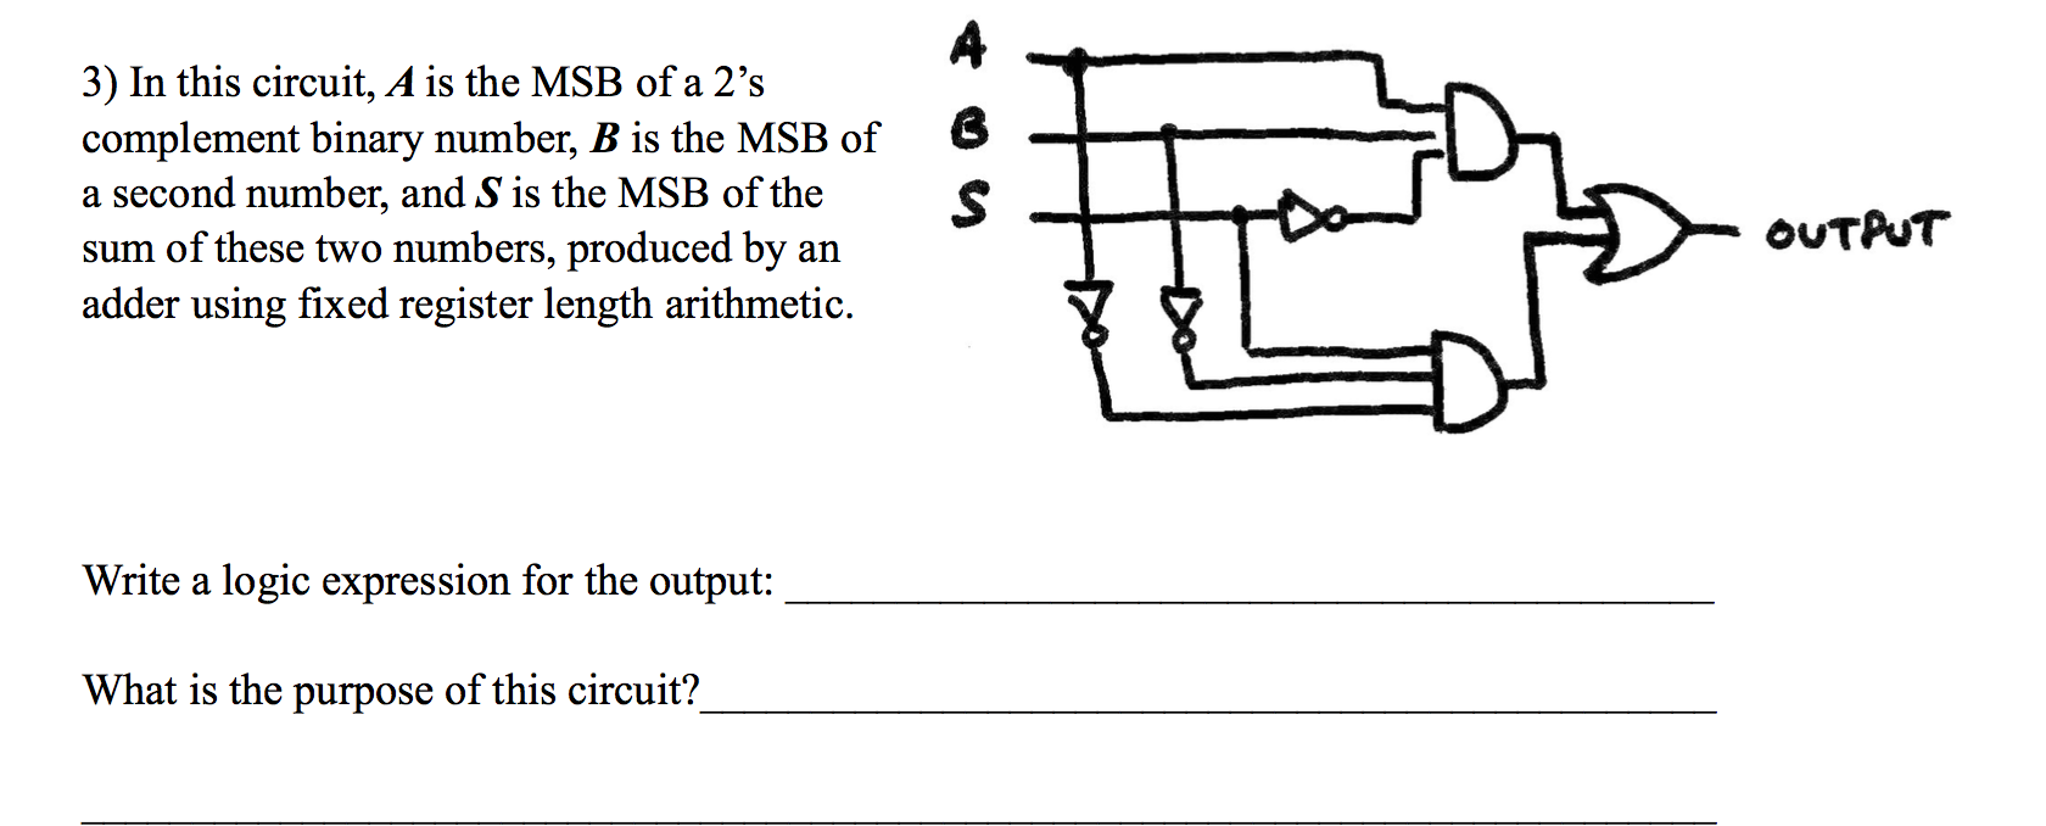 In this circuit, A is the MSB of a 2's complement